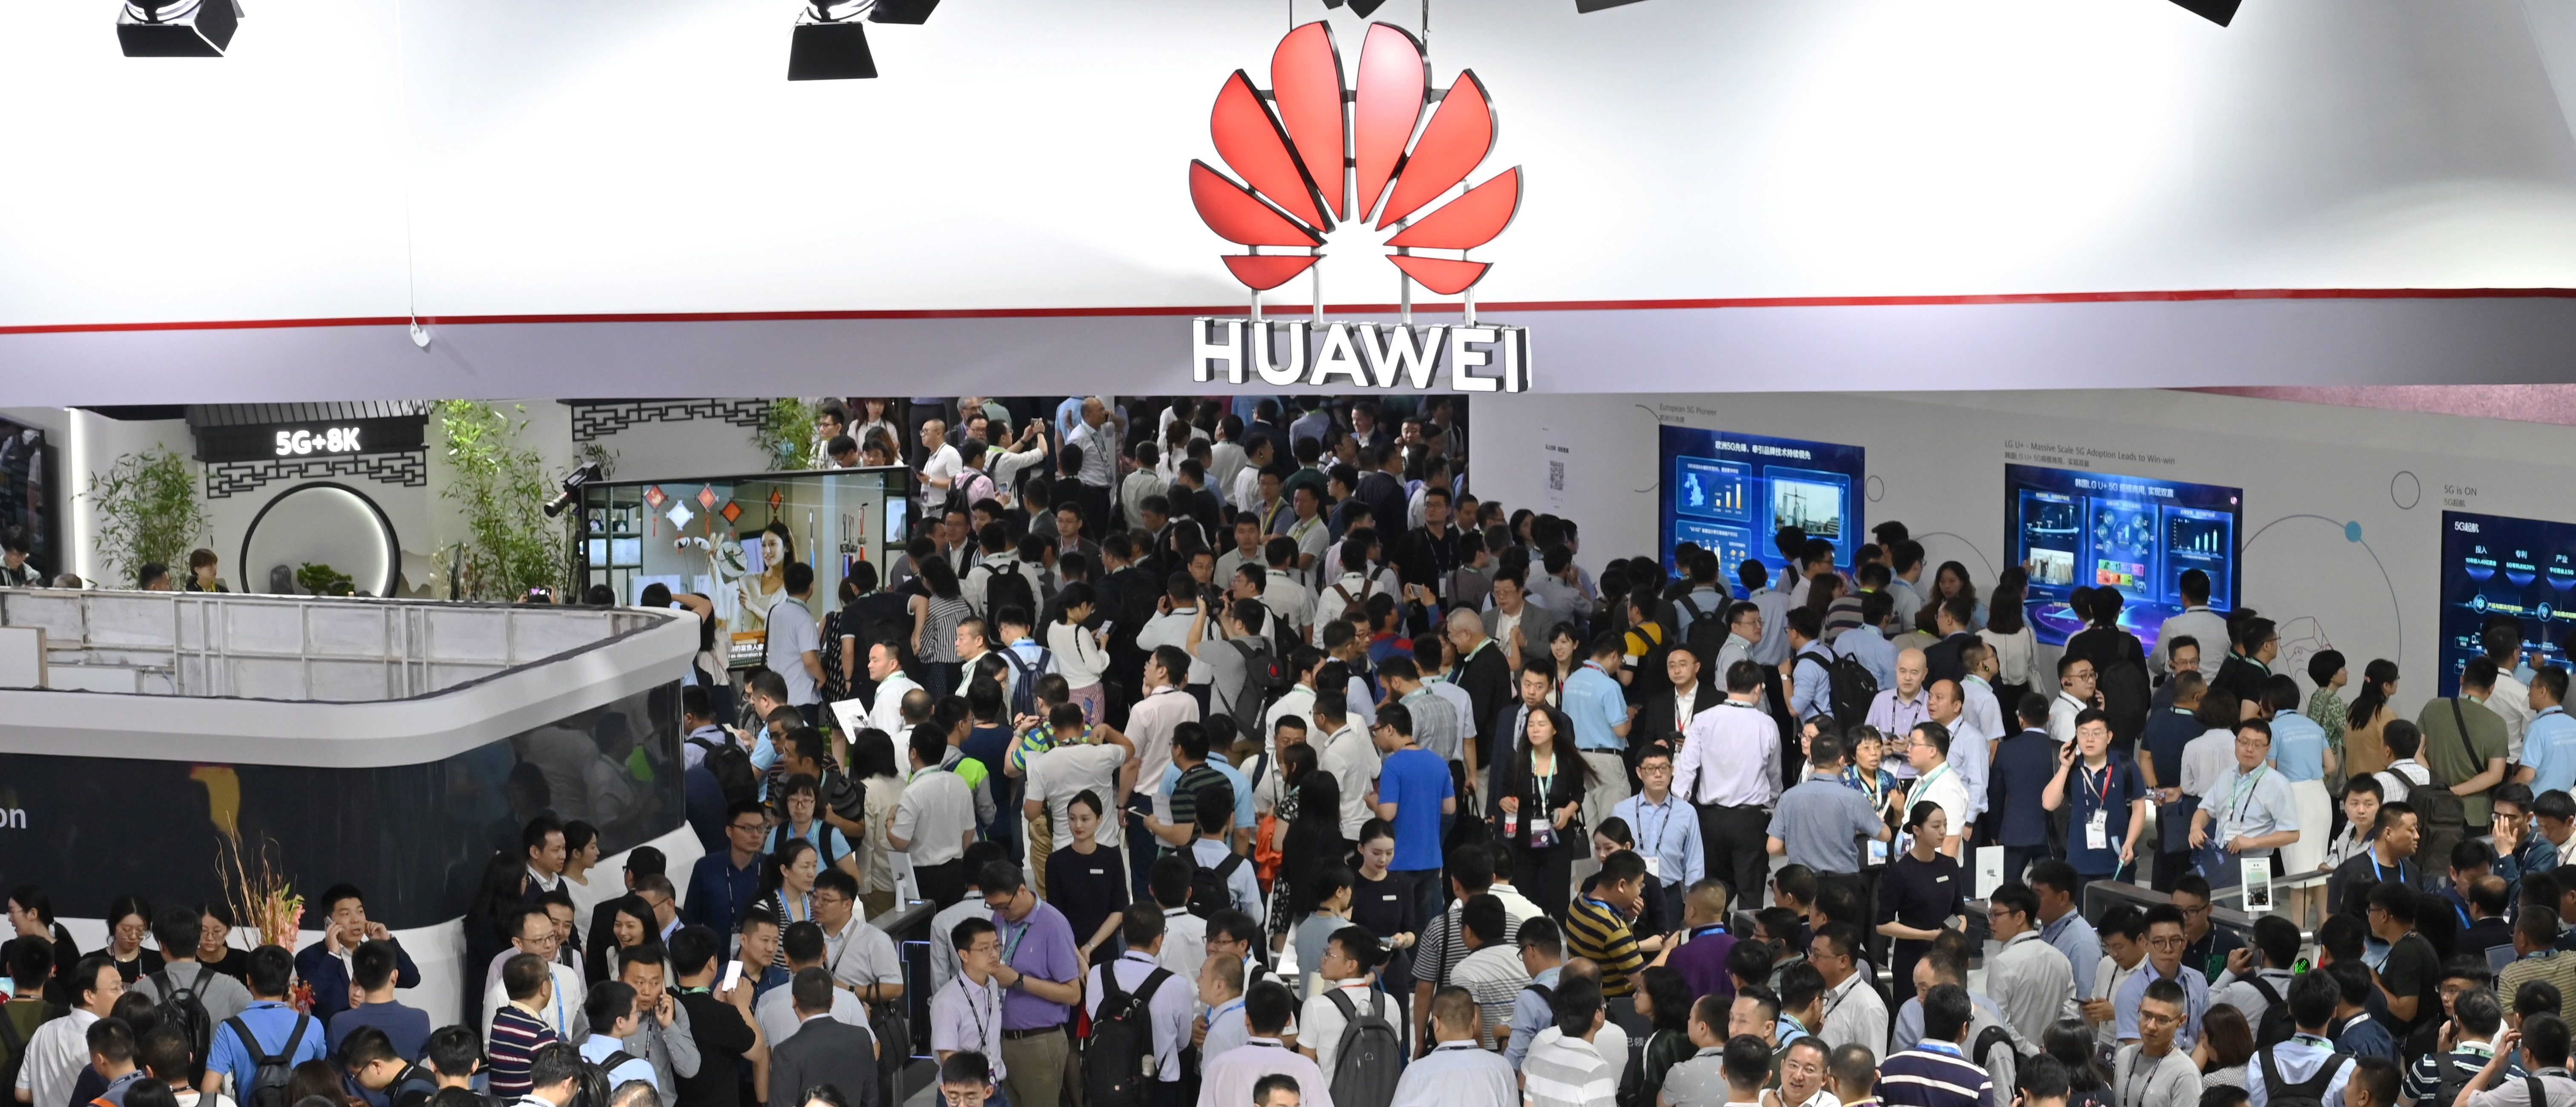 People visit a Huawei stand during the Mobile World Congress (MWC 2019) introducing next-generation technology at the Shanghai New International Expo Centre(SNIEC) in Shanghai on June 26, 2019. (Photo by HECTOR RETAMAL/AFP/Getty Images)